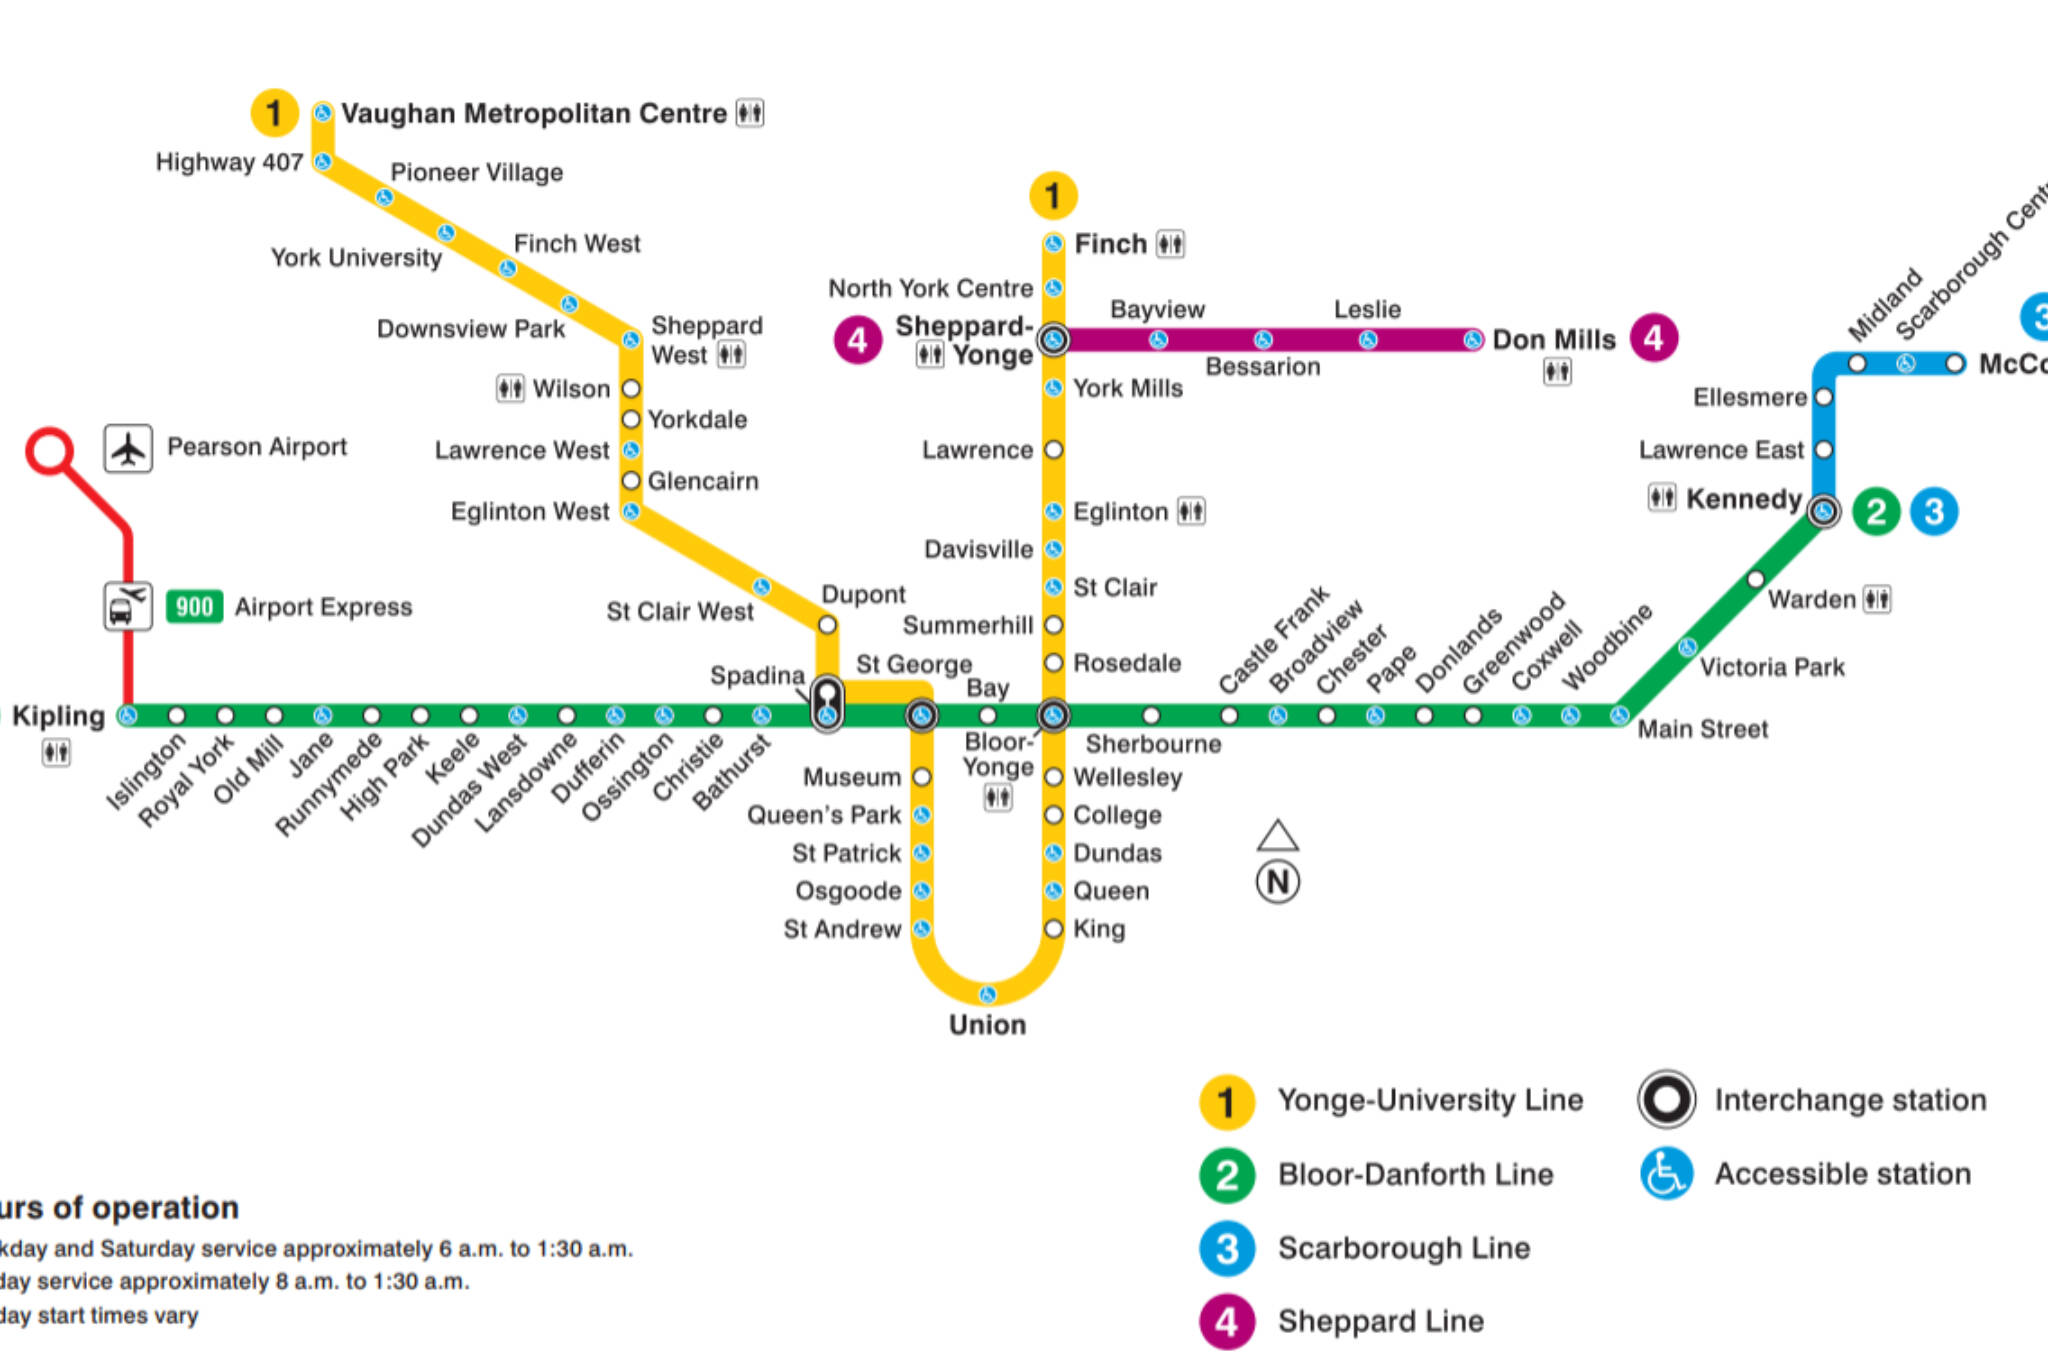 How To Design A Subway Map.The Evolution Of The Ttc Subway Map